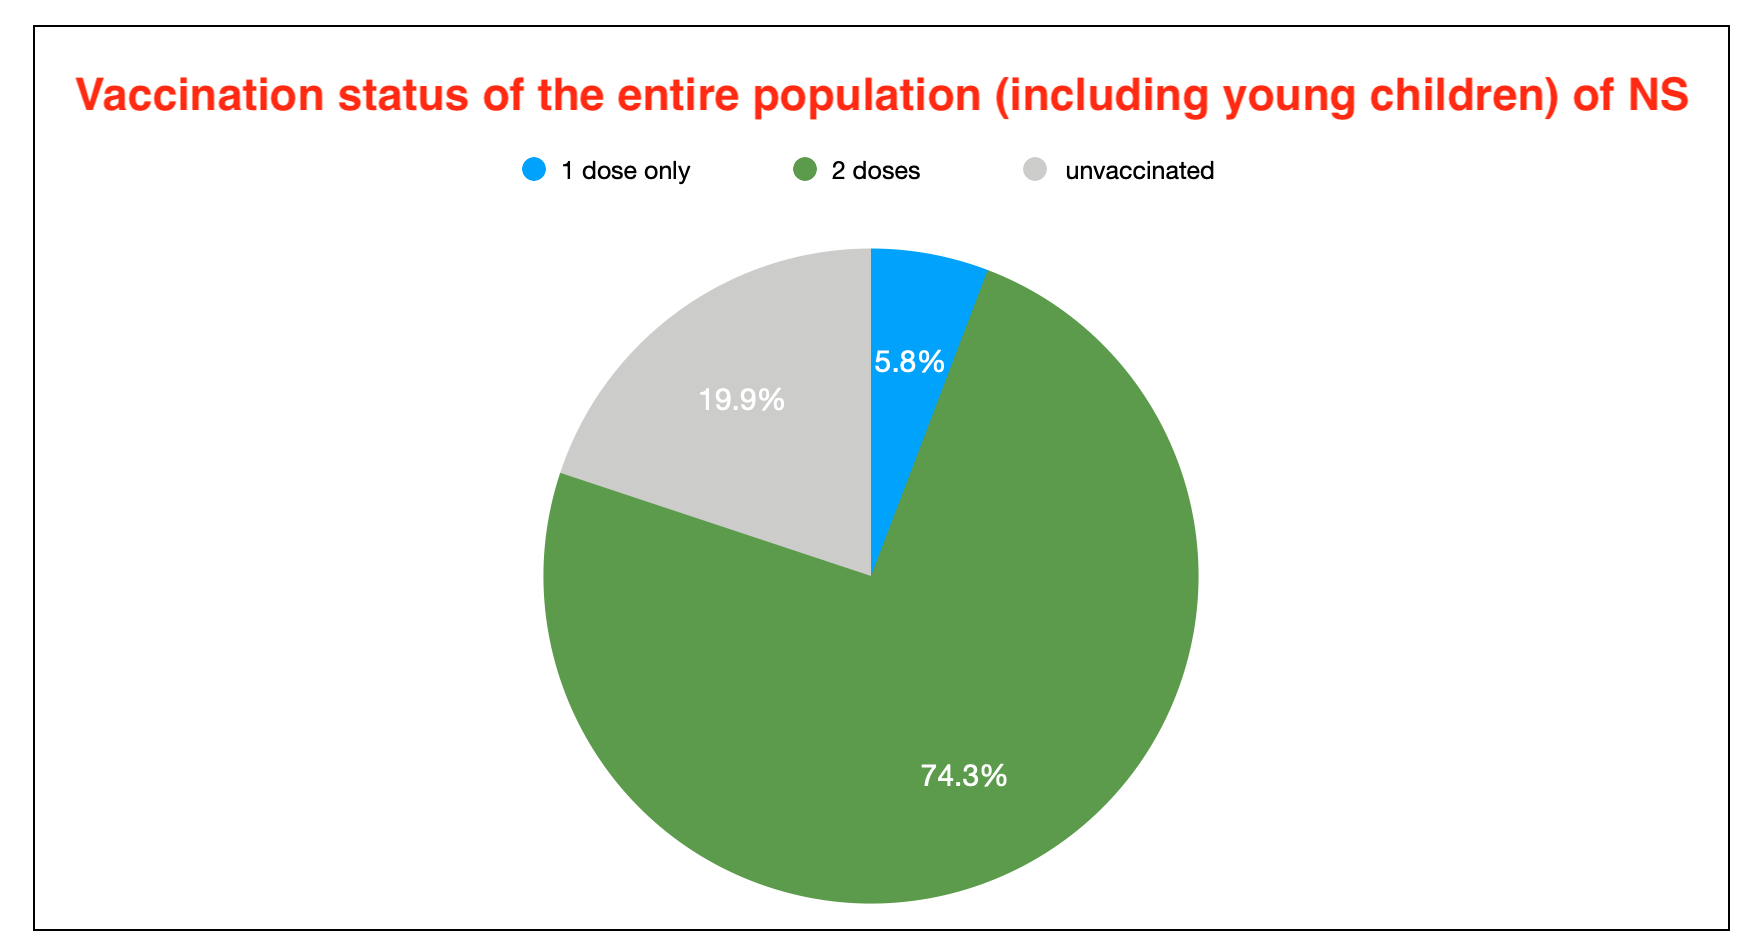 A pie chart showing vaccination levels in Nova Scotia. The green section showing two doses is nearly three quarters of the pie now.